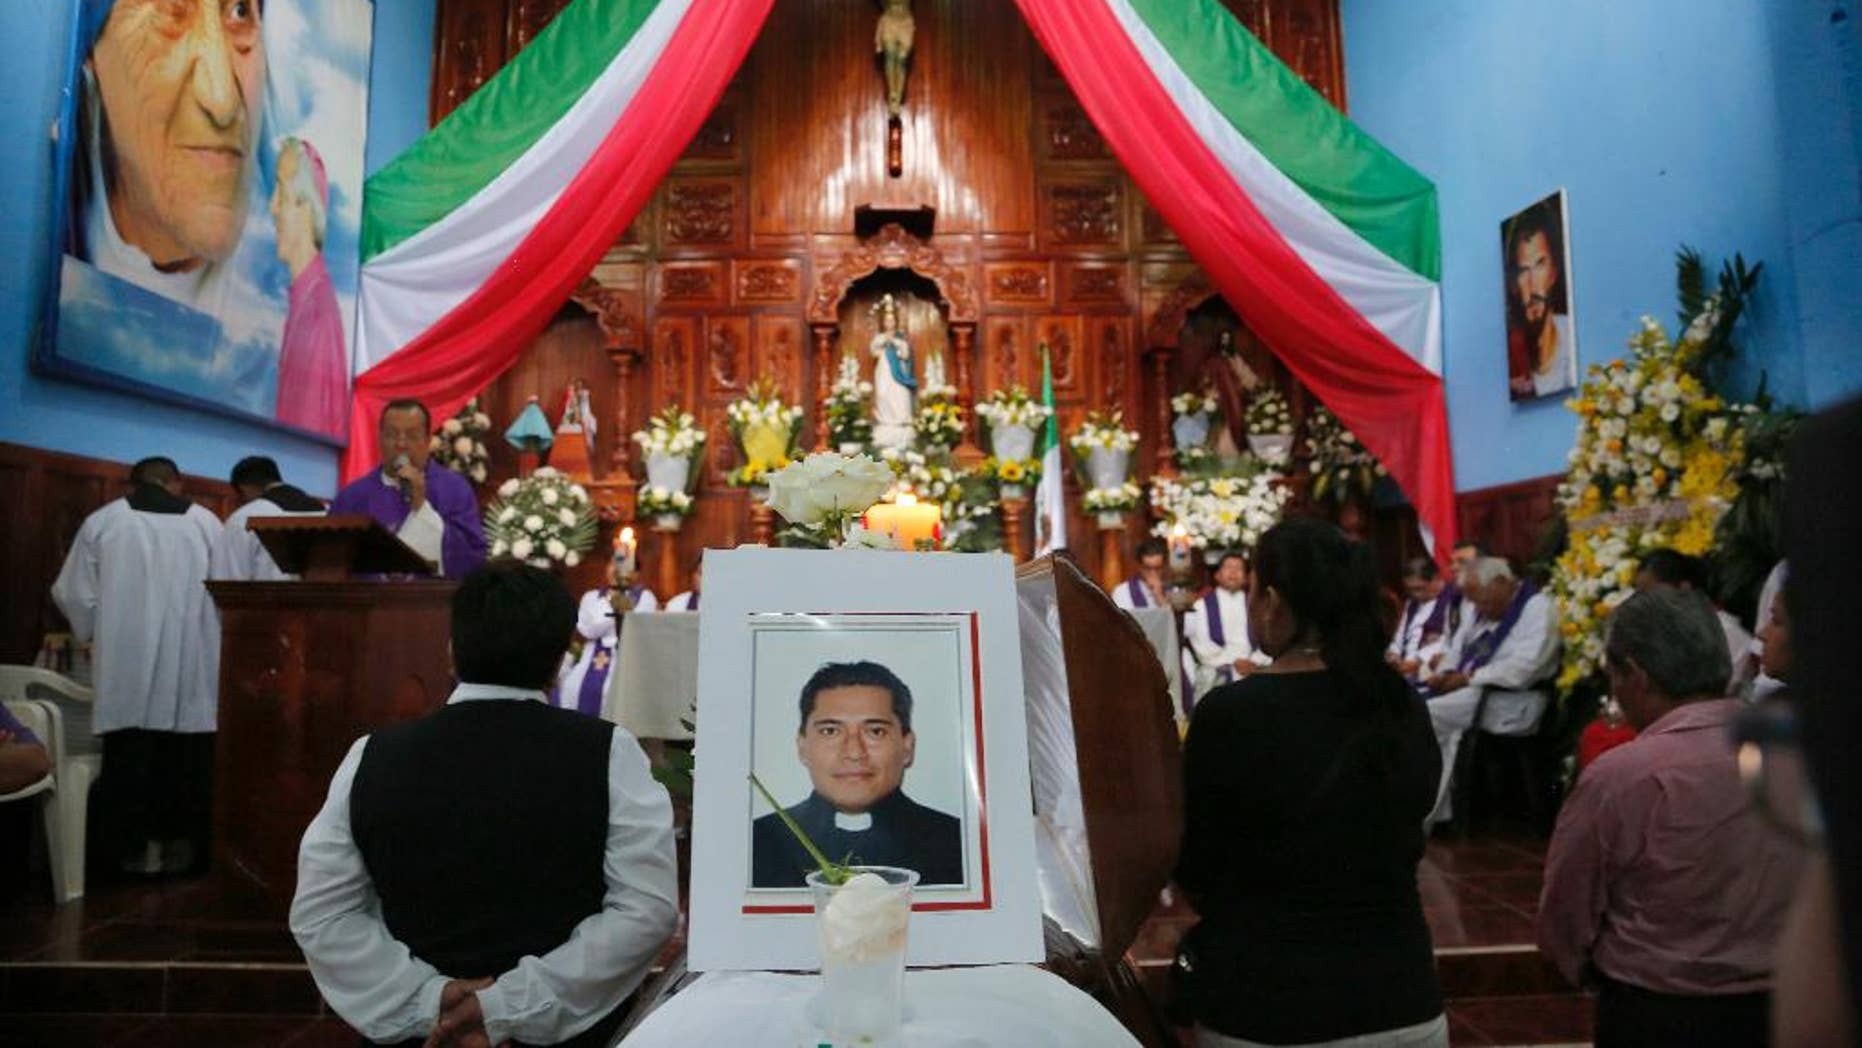 FILE - In this Sept. 21, 2016 file photo, people gather at Our Lady of Asuncion Church in Paso Blanco, Veracruz state, Mexico, for the funeral Mass of Rev. Jose Alfredo Suarez de la Cruz, one of two priests who was found bound and shot to death along a roadside on Sept. 19.  Mexican authorities arrested a suspect in the abduction and murder of the two priests in Veracruz state last month. Mexico City prosecutors say in a statement released Monday, Oct. 17, 2016, that the unidentified person was detained Oct. 13 along with another person after they allegedly car-jacked a couple in the capital. (AP Photo/Marco Ugarte, File)